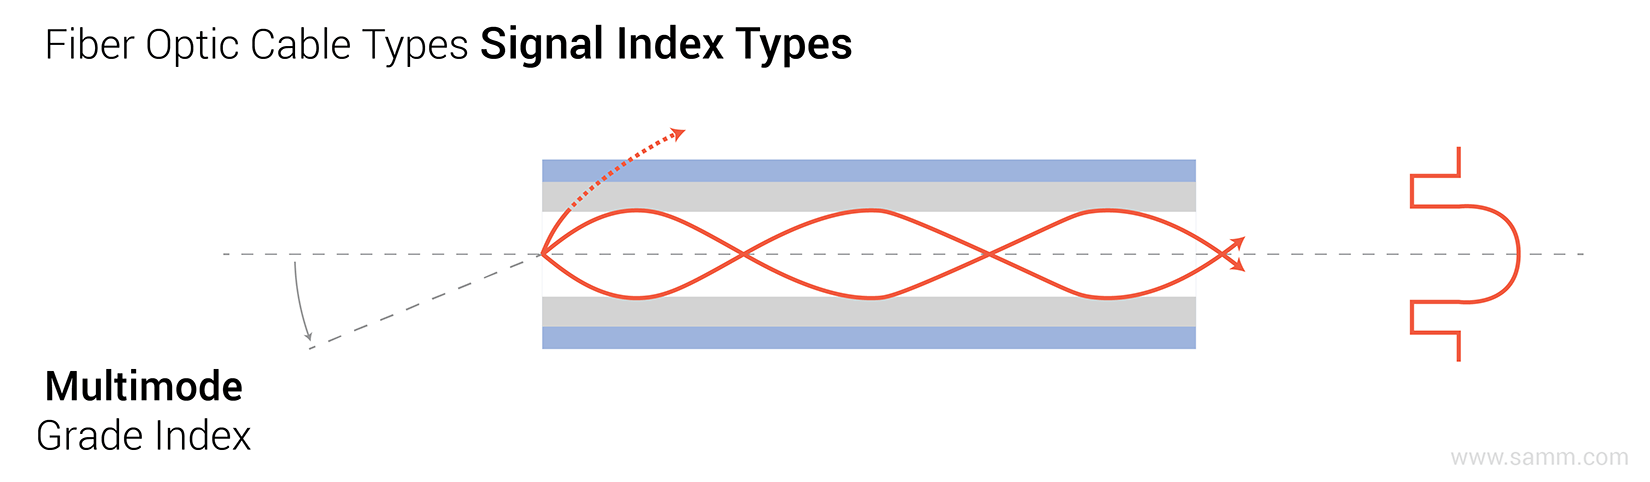 hight resolution of fiber optic cable types signal indexing